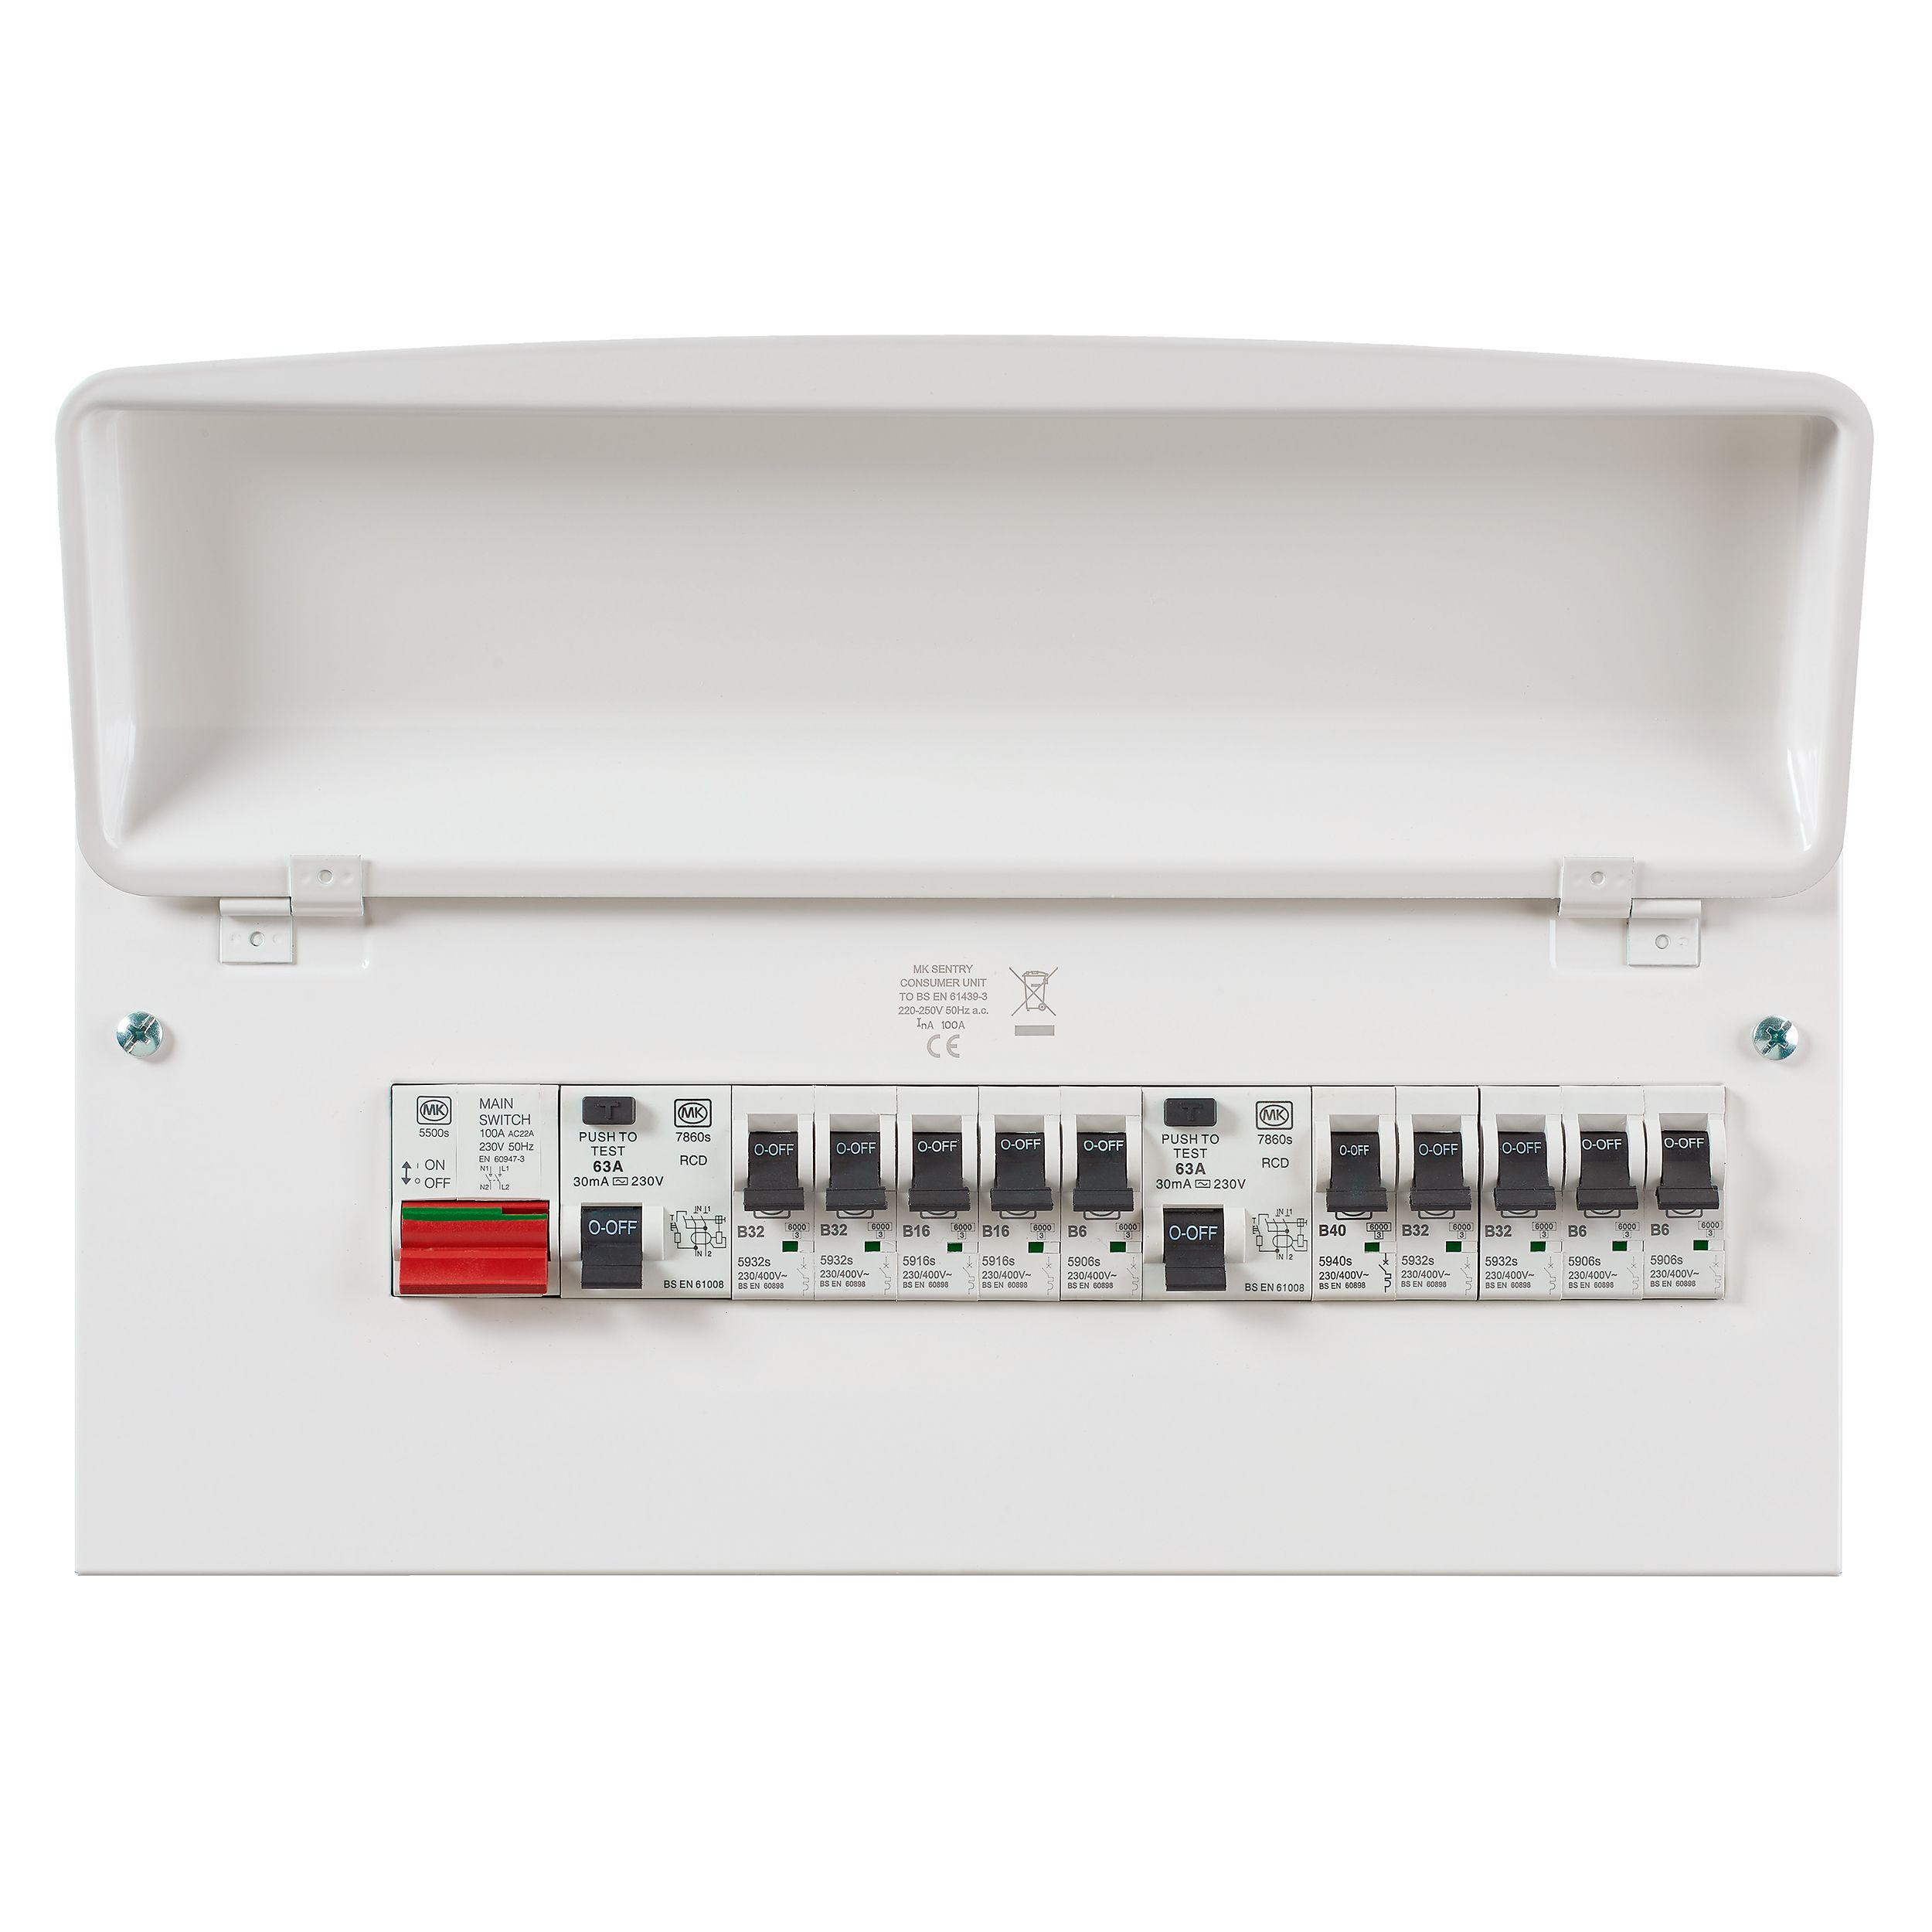 Awesome rcd mcb wiring diagram adornment best images for wiring outstanding dual rcd consumer unit wiring diagram embellishment cheapraybanclubmaster Images